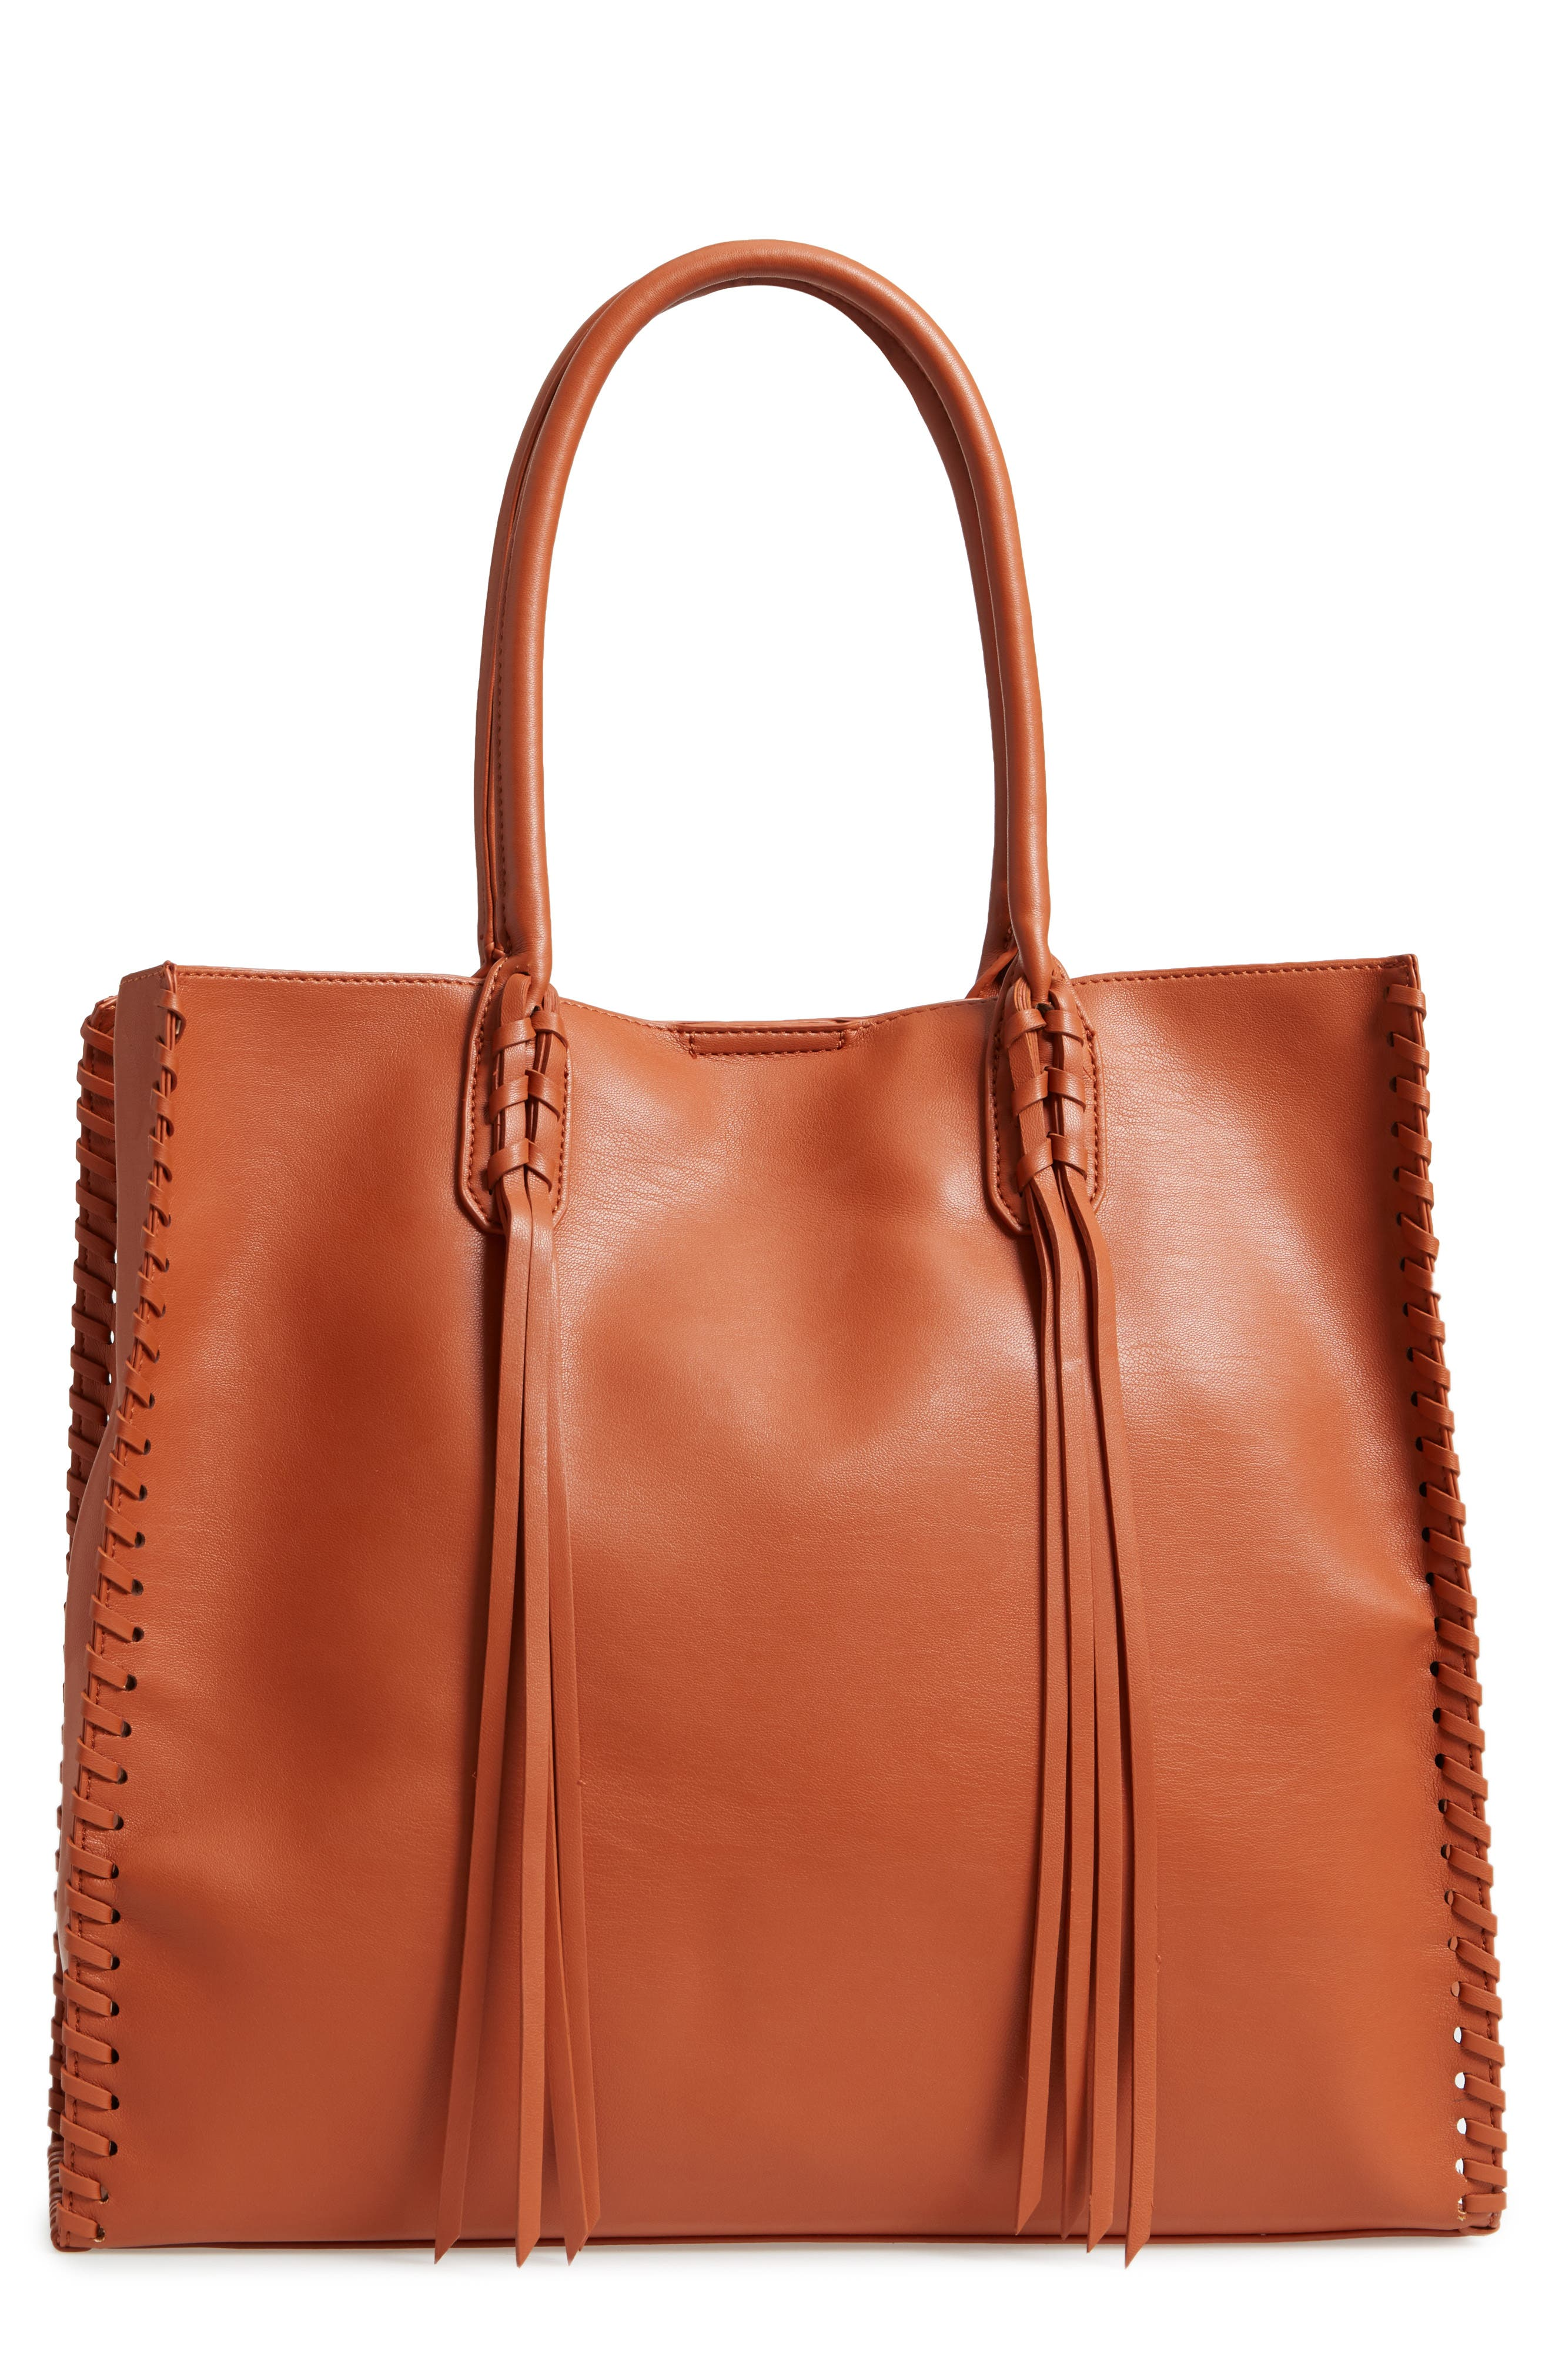 Cadence Faux Leather Whipstitch Tote,                             Main thumbnail 1, color,                             Cognac